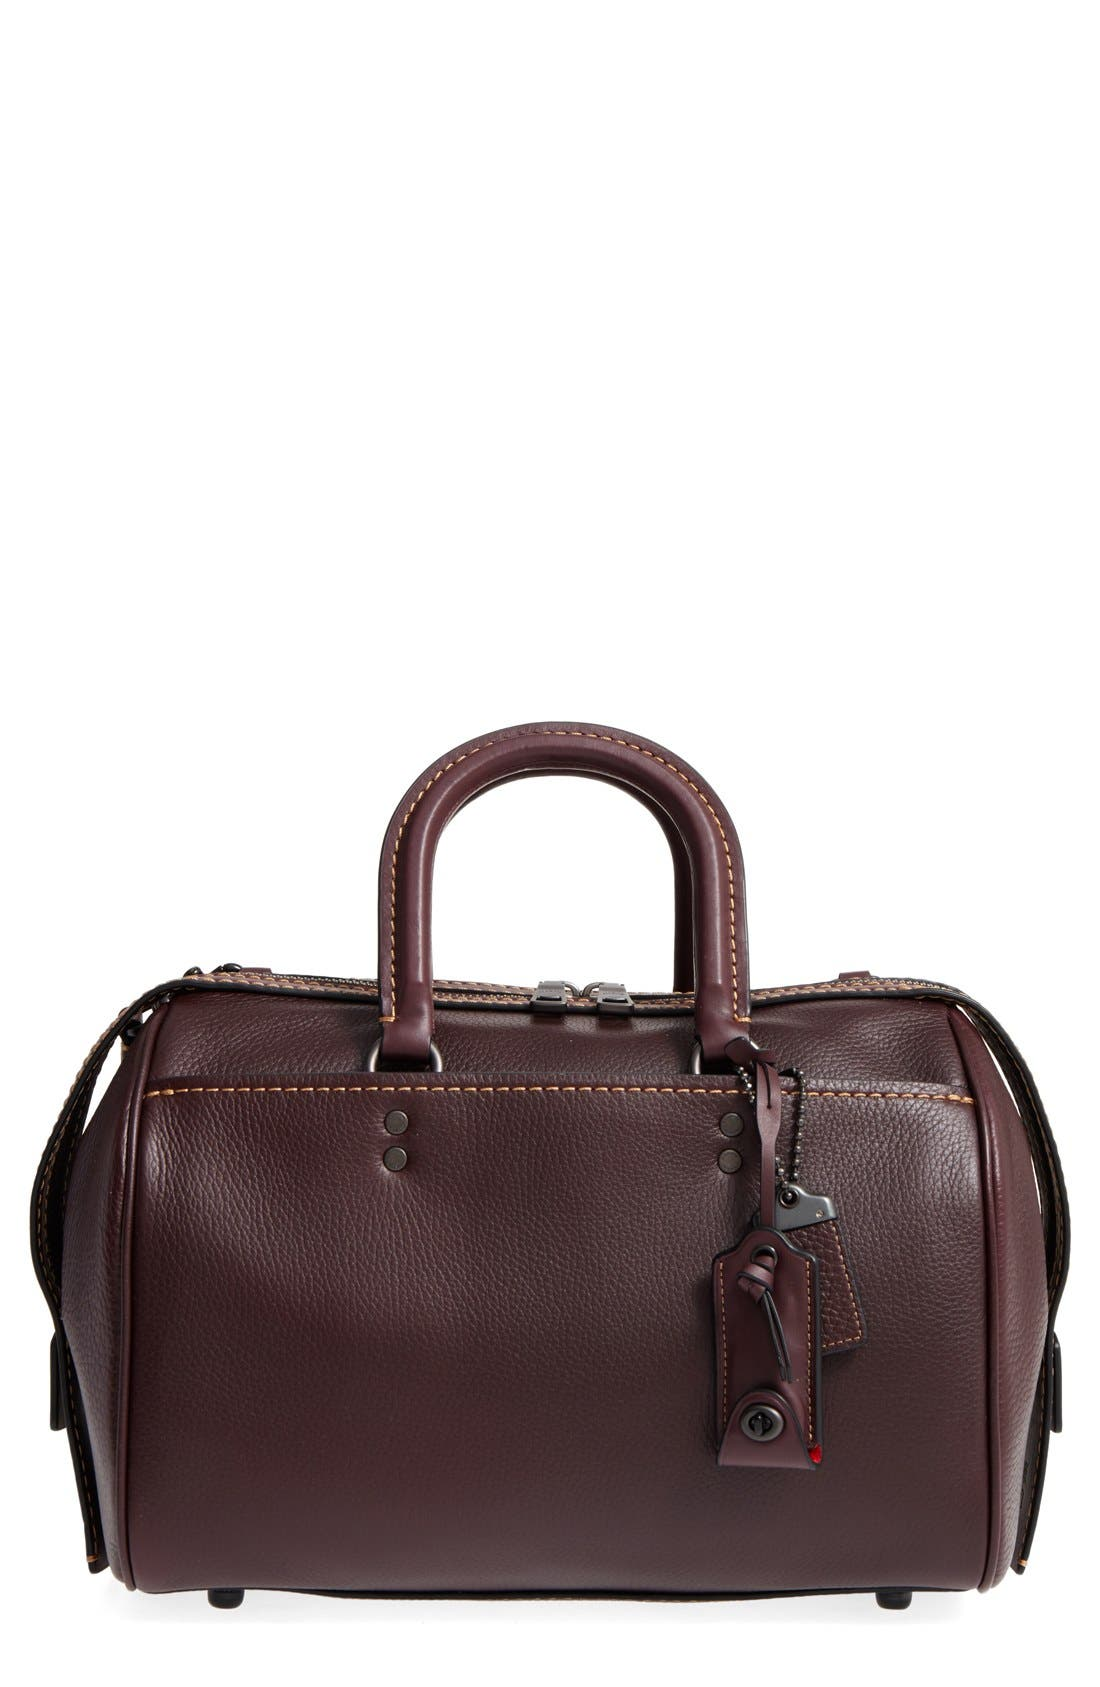 Alternate Image 1 Selected - COACH 1941 Rogue Leather Satchel